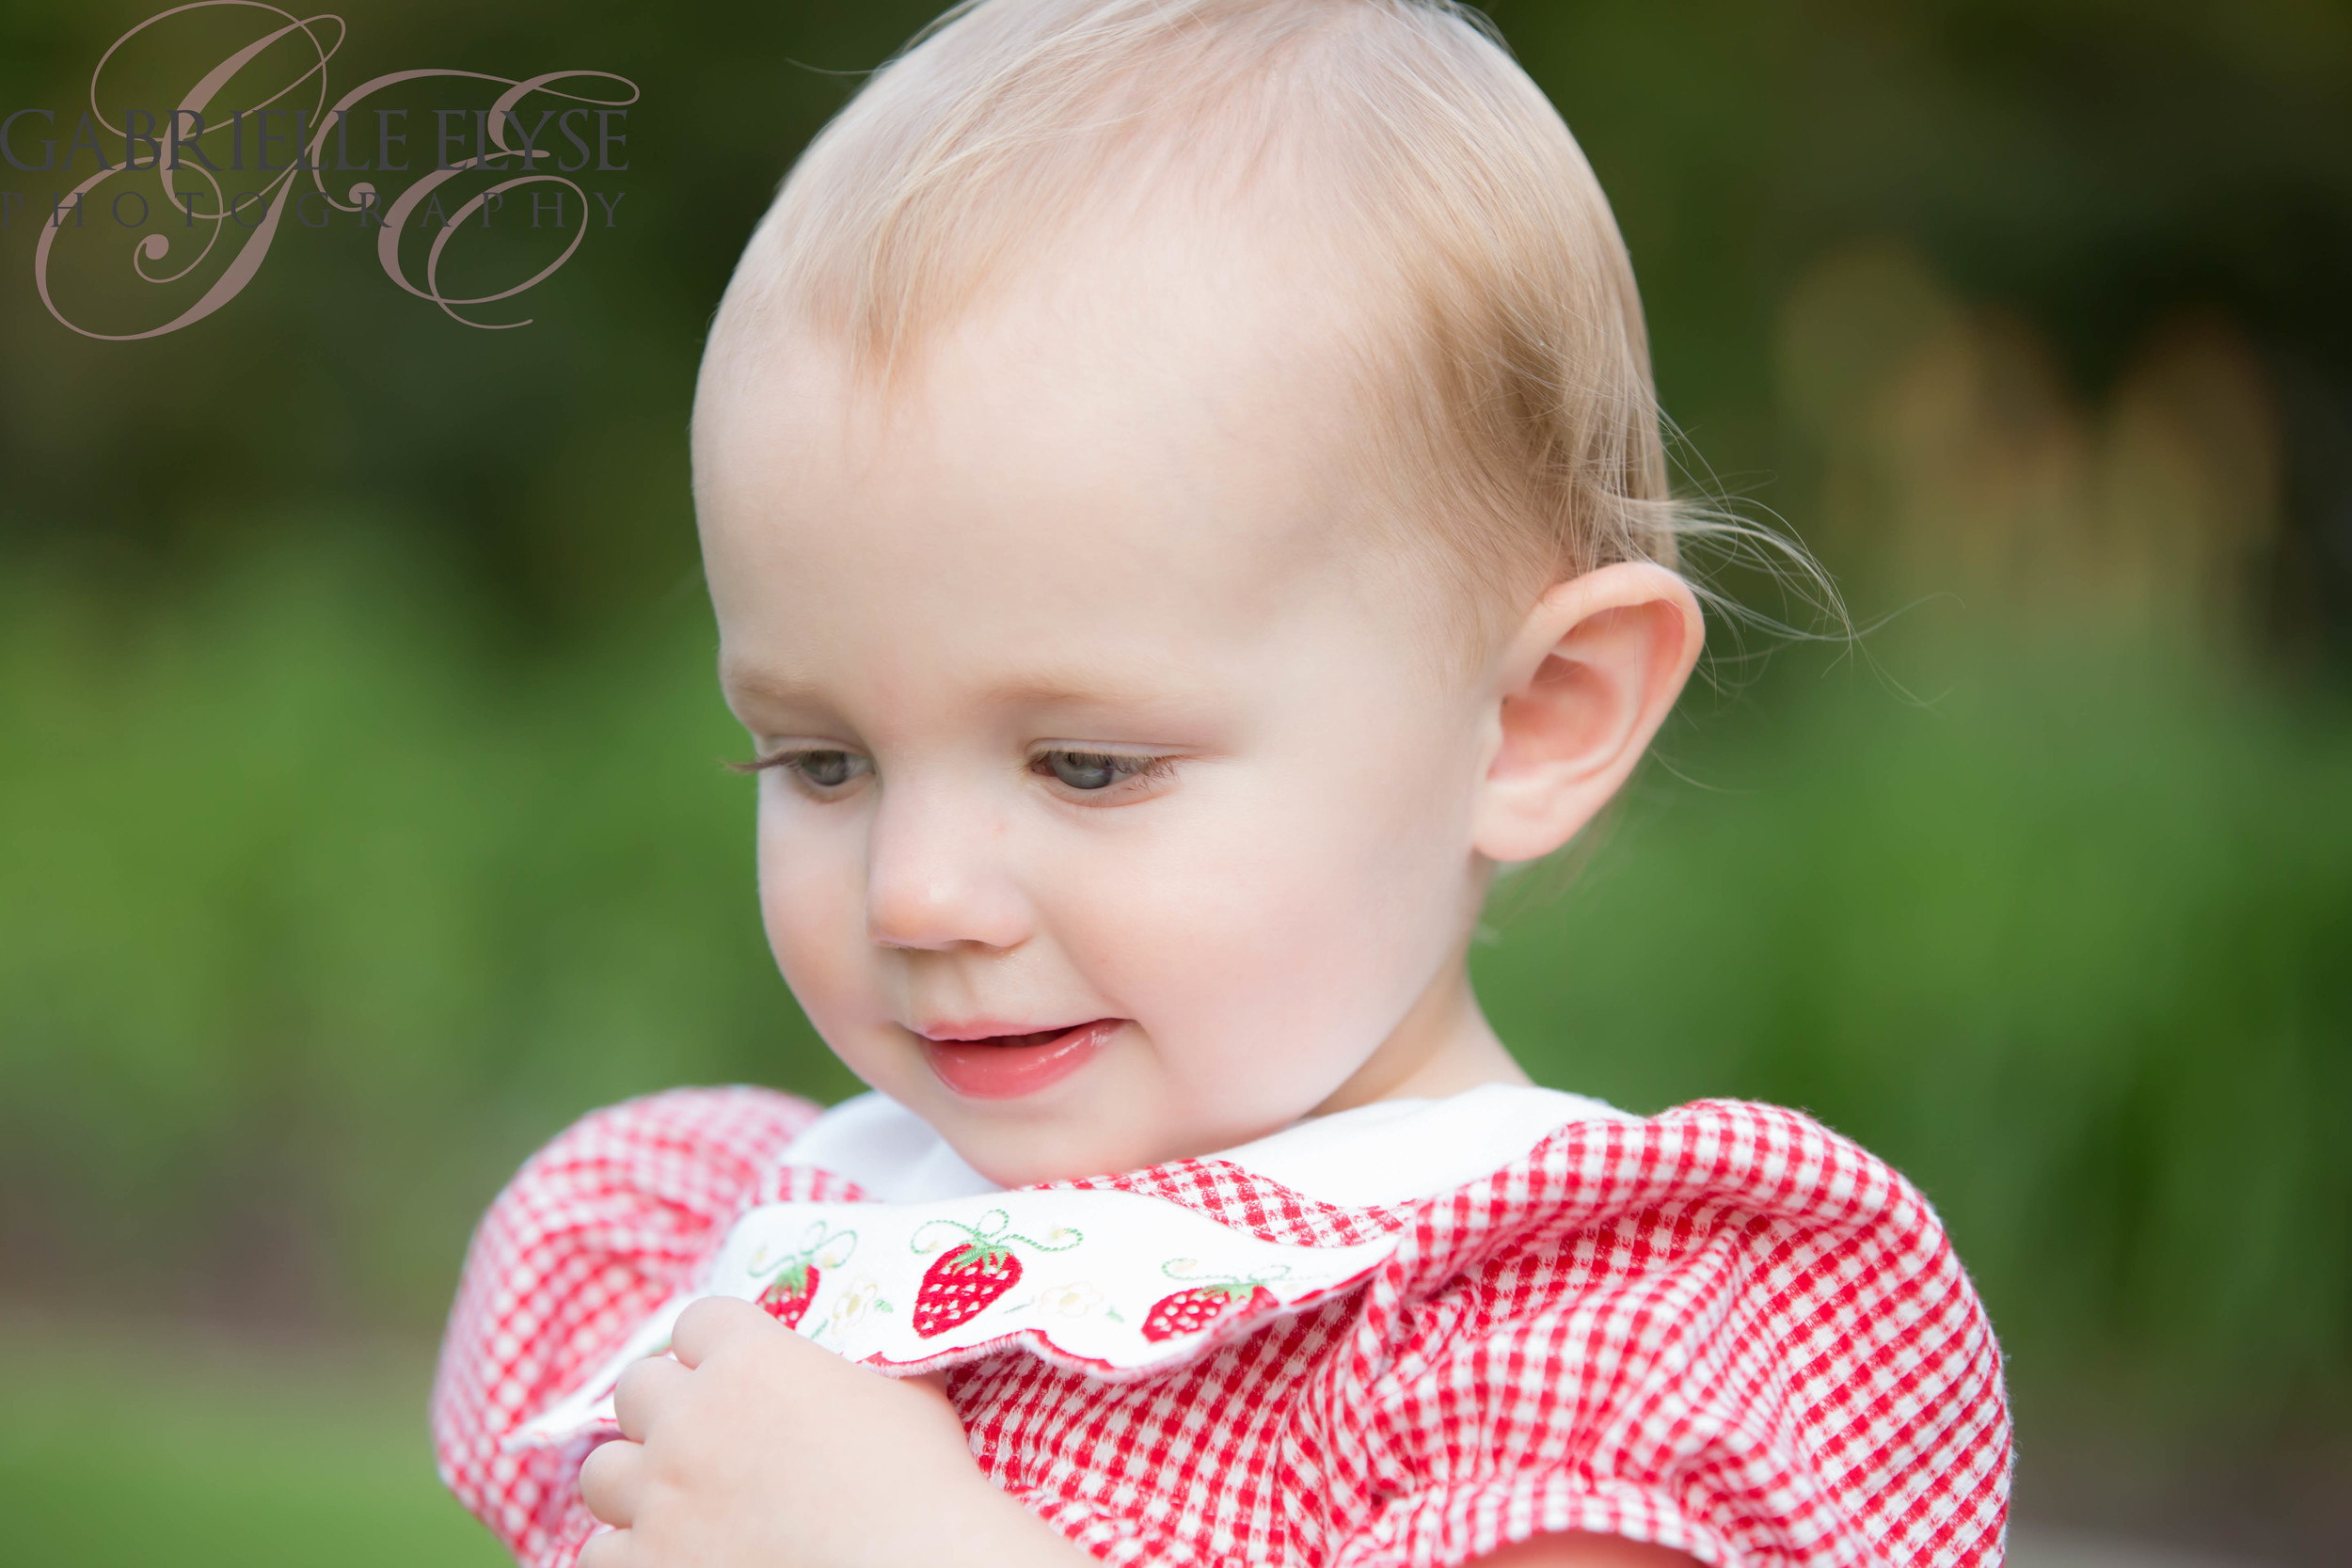 north raleigh toddler girl red dress